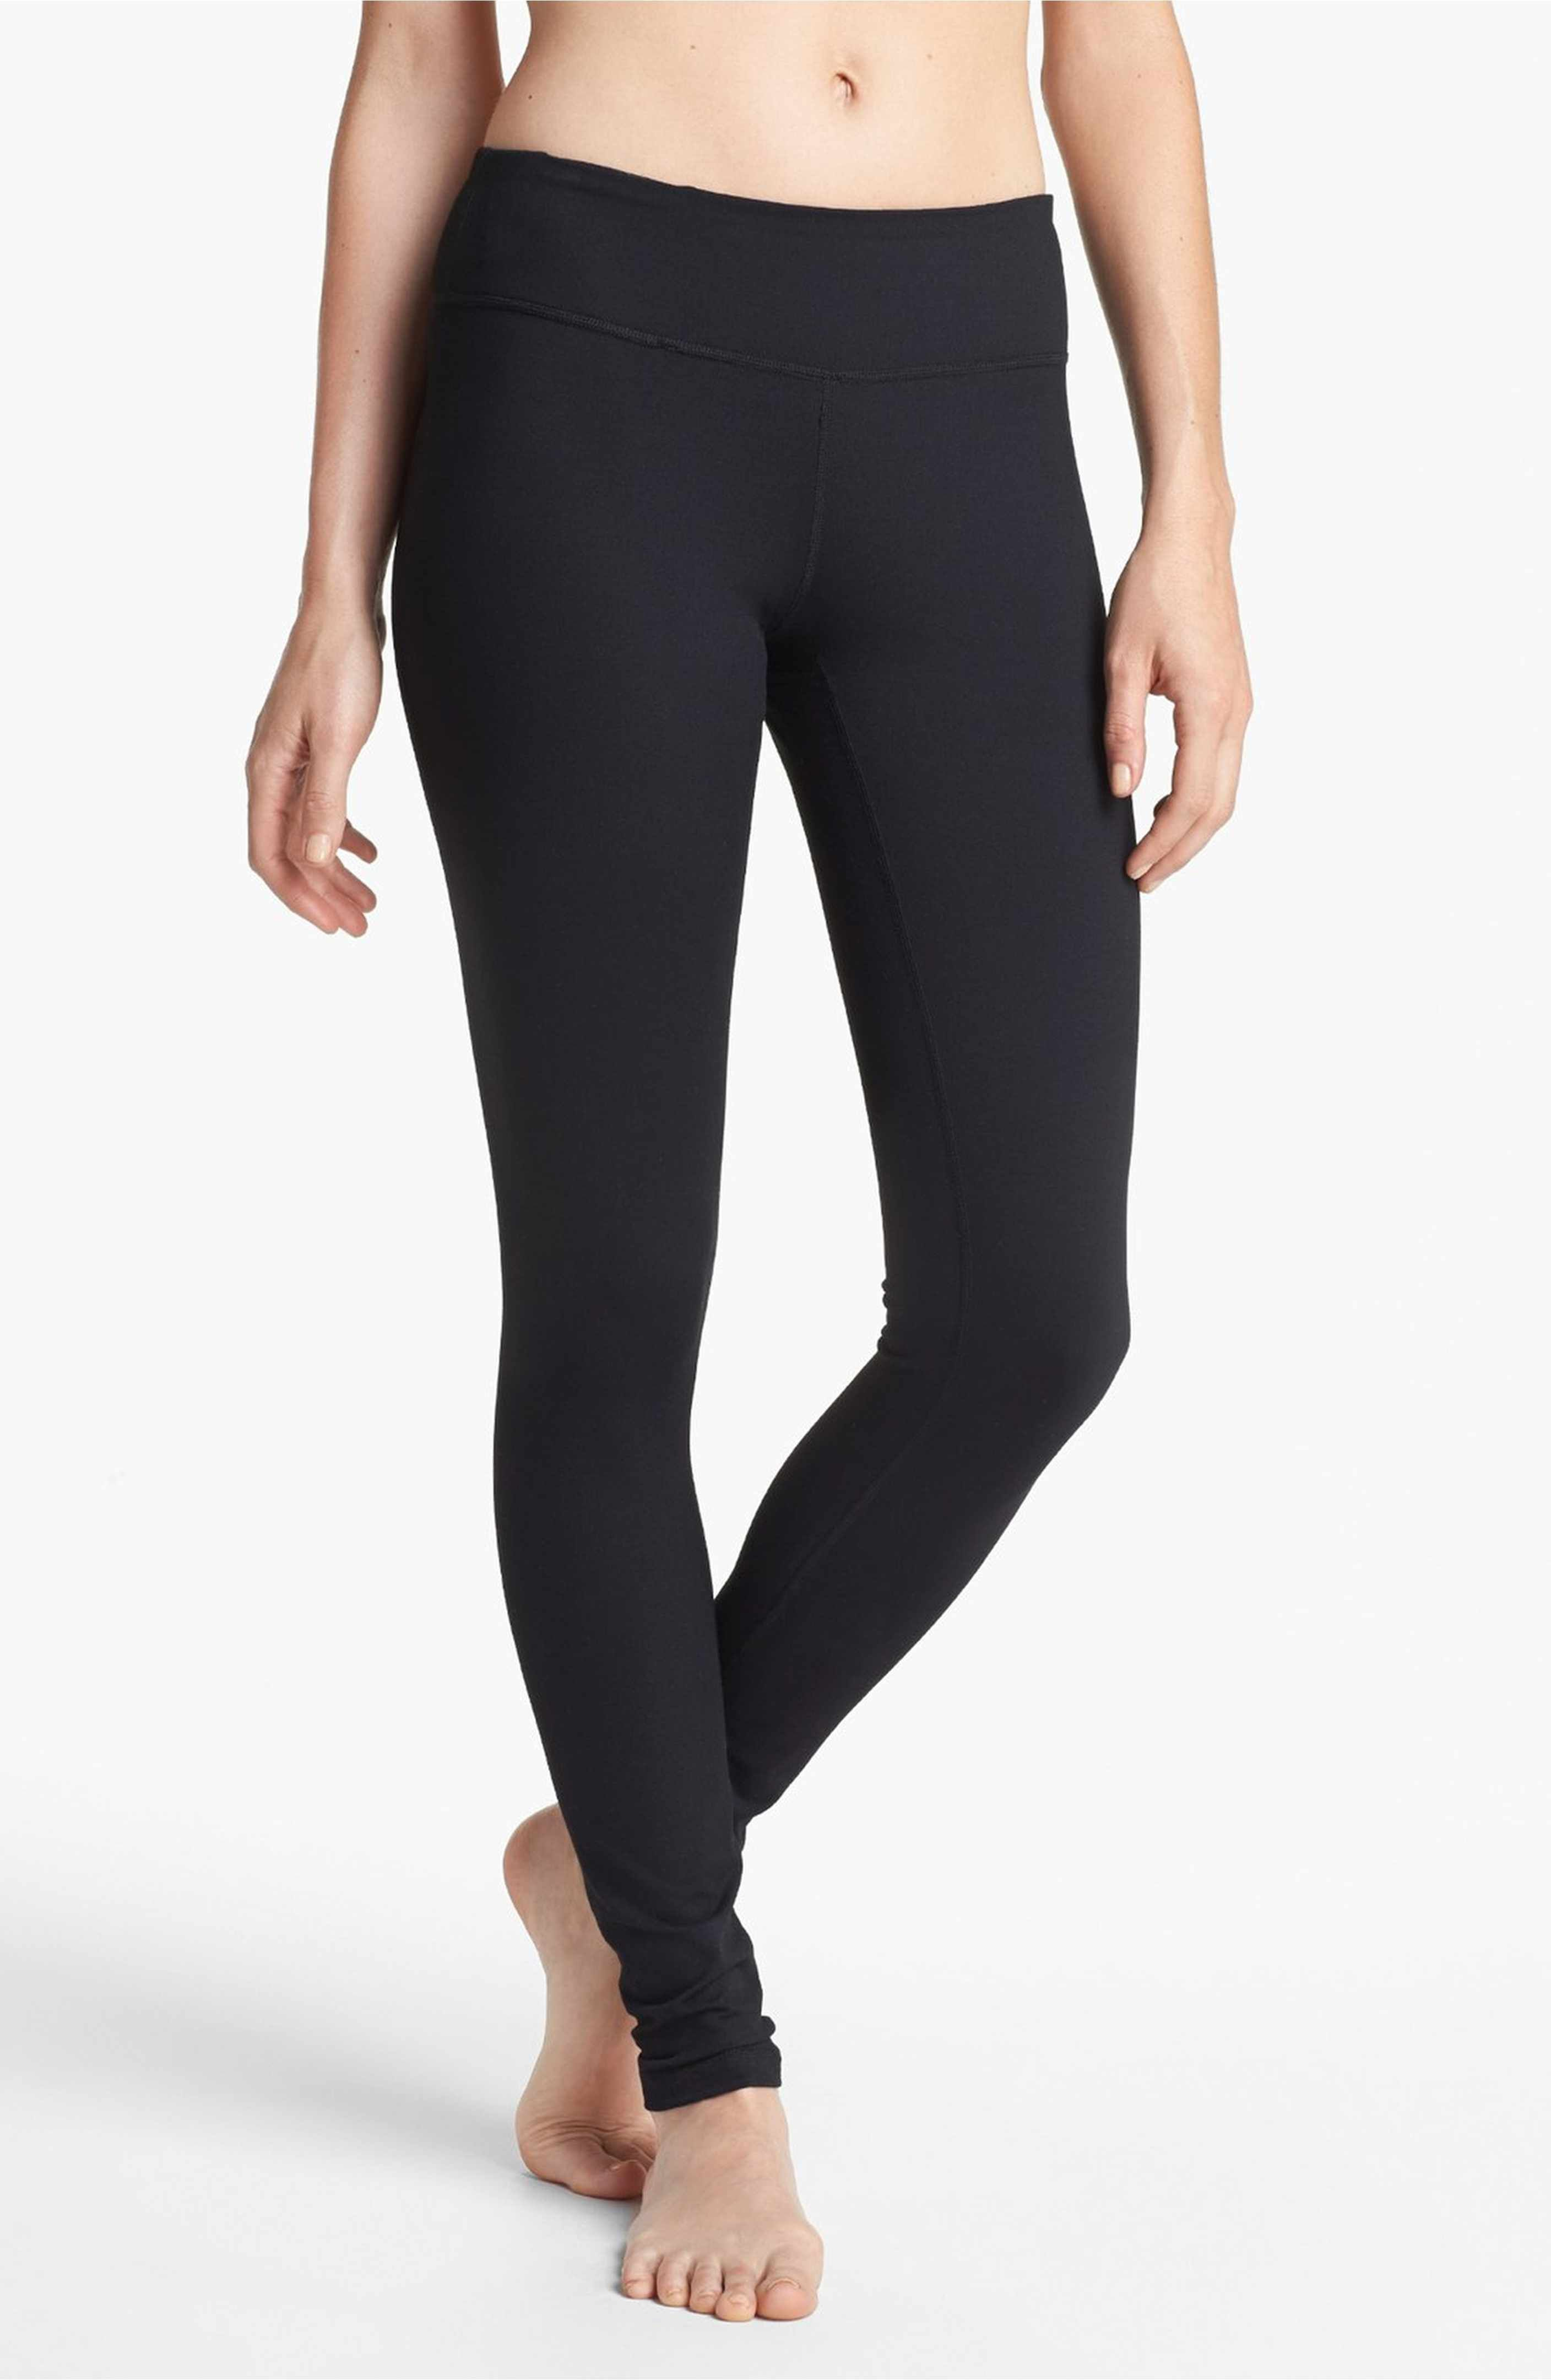 6194a282d21b6c These are supposed to be the best leggings of all time. Size Small - Main  Image - Zella Live In Slim Fit Leggings